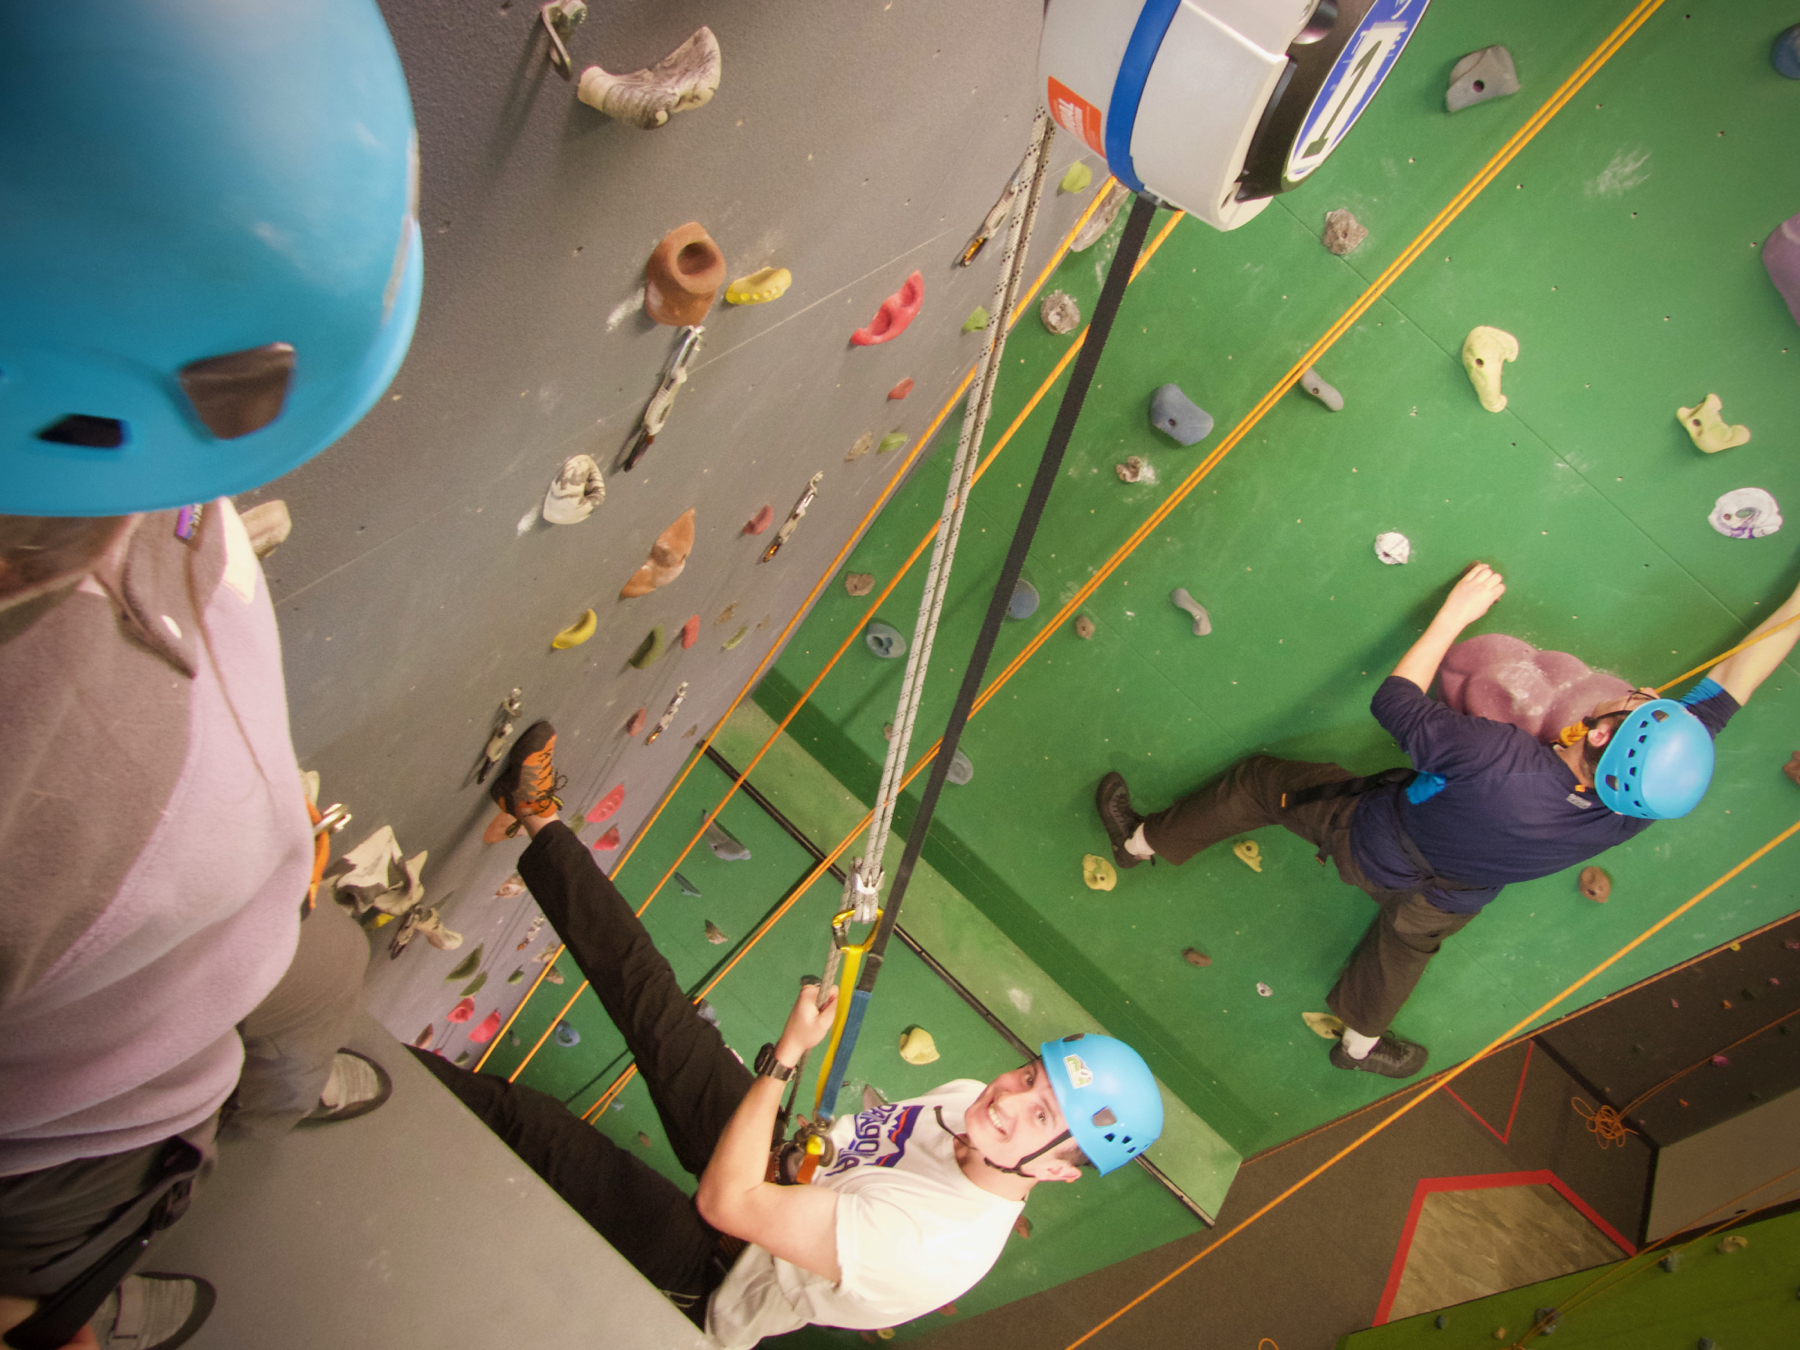 Camper Enjoying Rappelling in the Crag Gym at Medeba Adventure Learning Centre